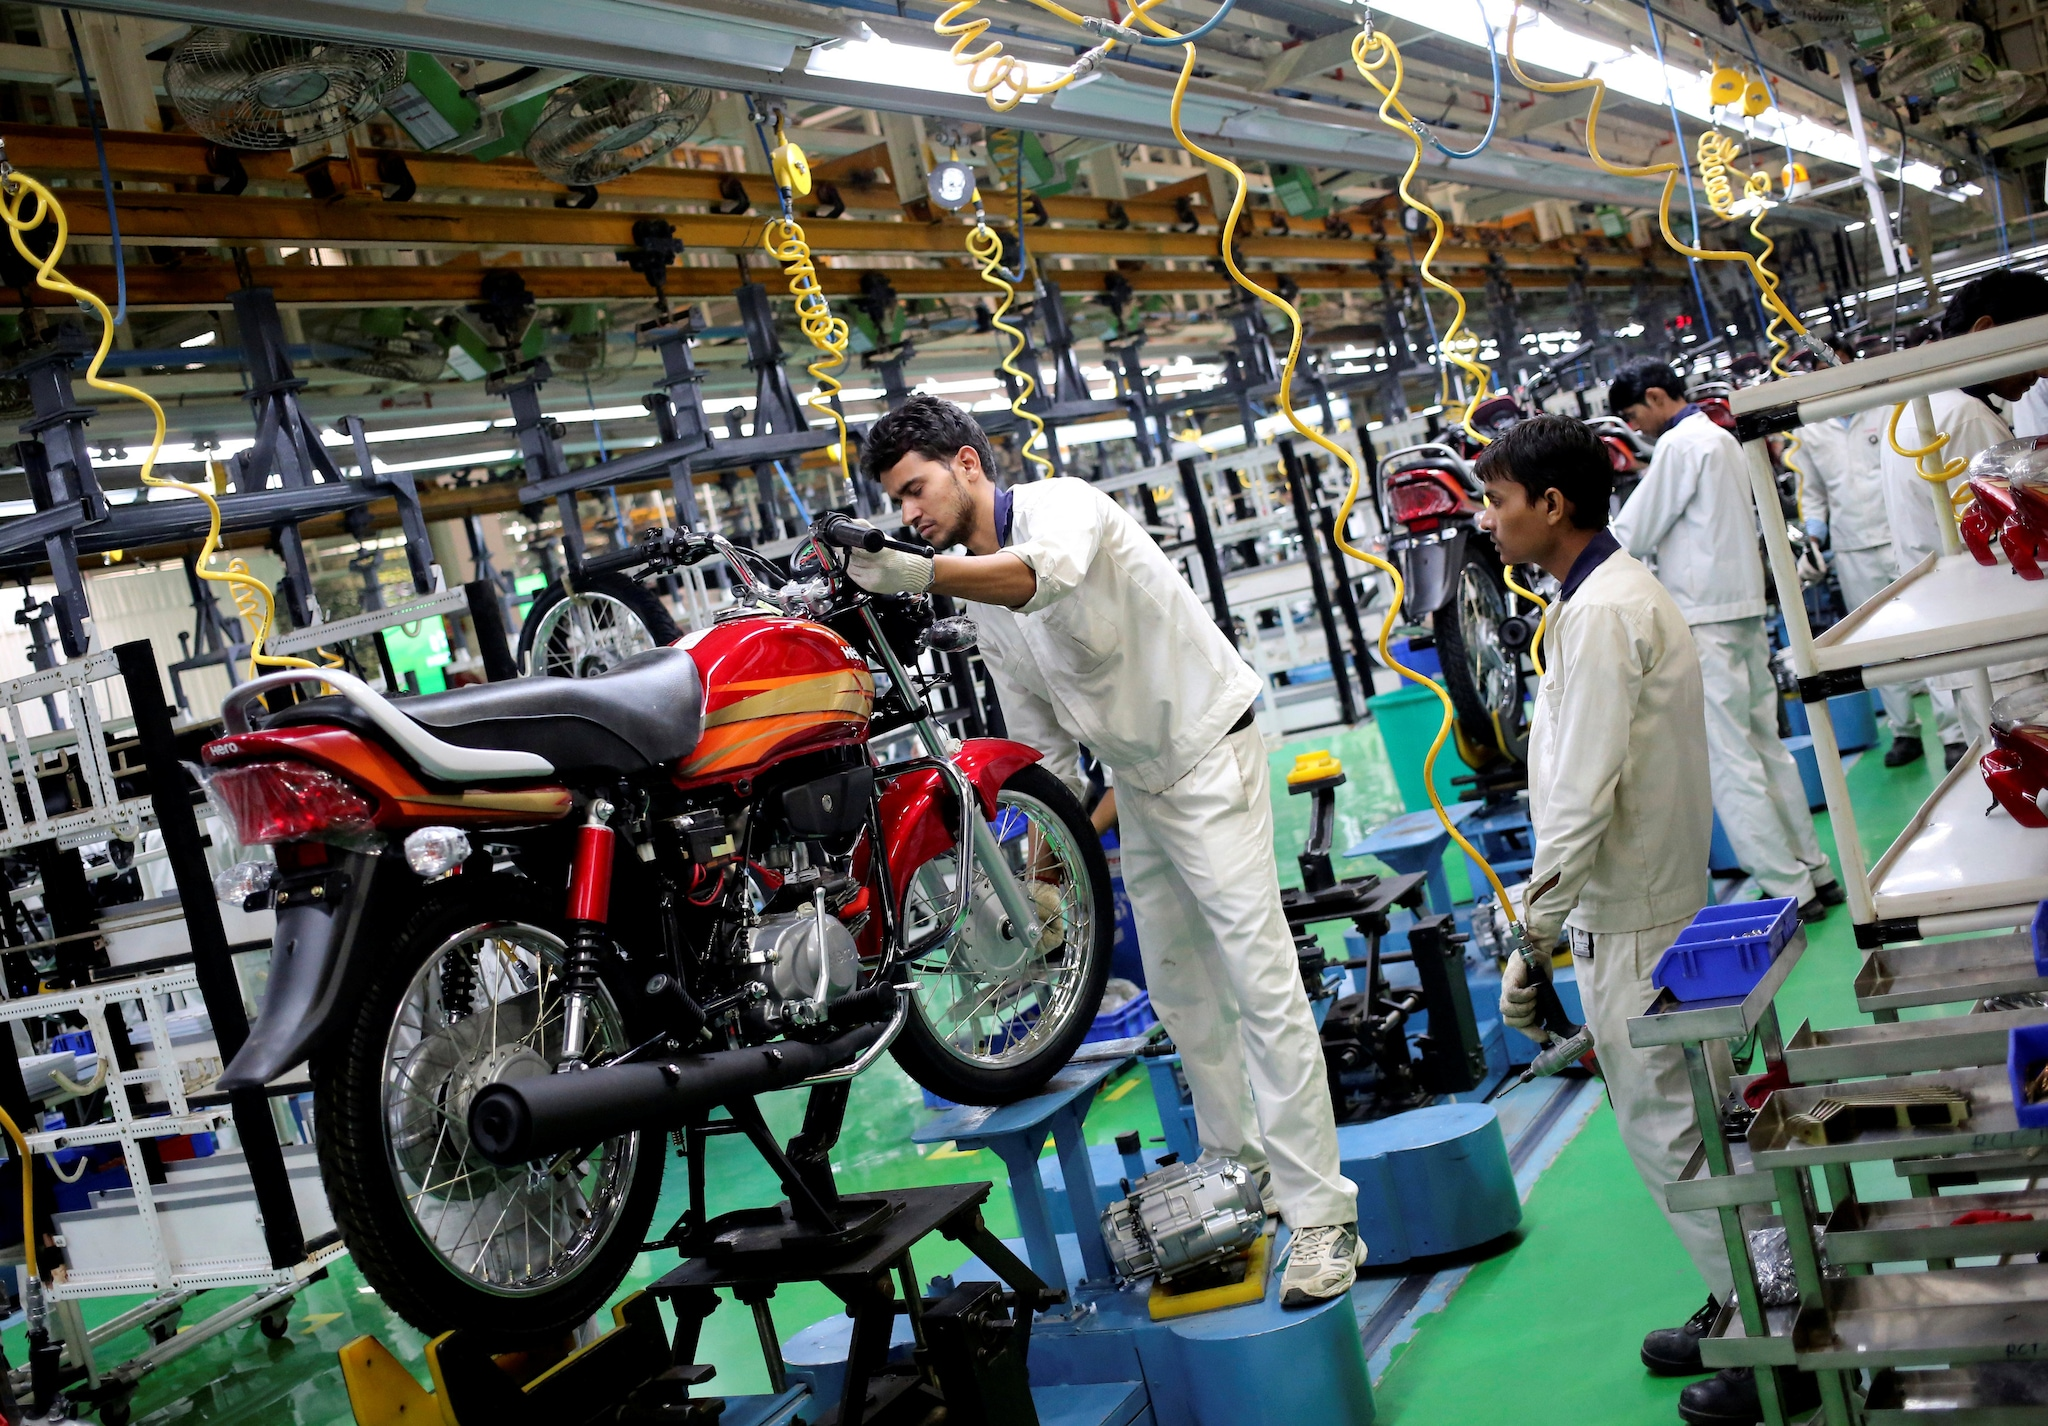 Hero MotoCorp    The company has decided to extend the shutdown at its manufacturing facilities across India, its Global Parts Center (GPC) in Neemrana and its R&D facility – the Centre of Innovation and Technology (CIT) in Jaipur – by another week, till May 16, 2021.